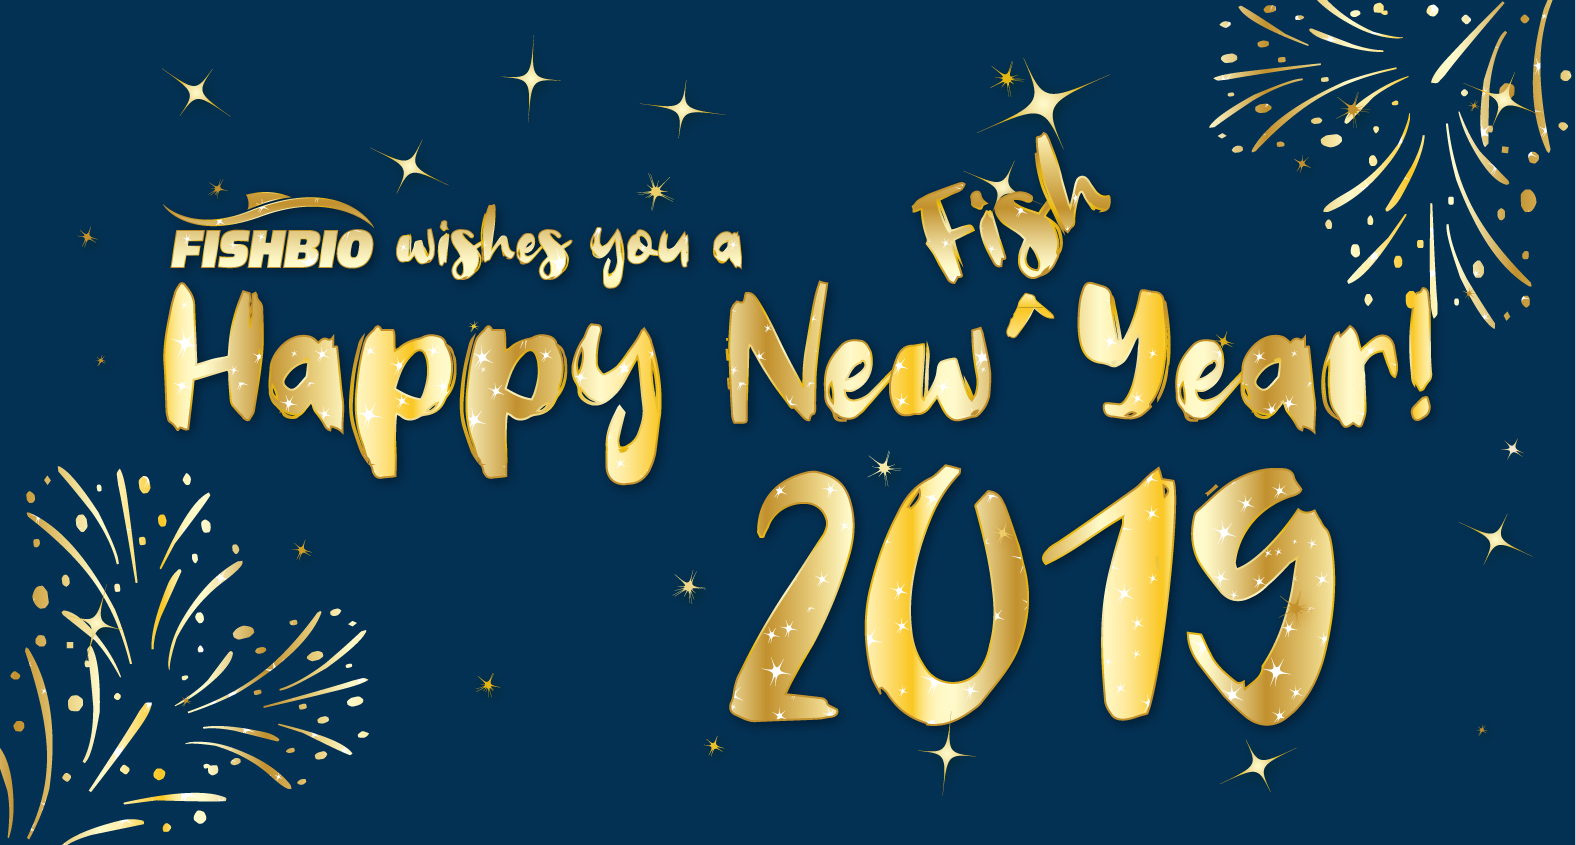 2019 Happy New Year Graphics_bluebg-01